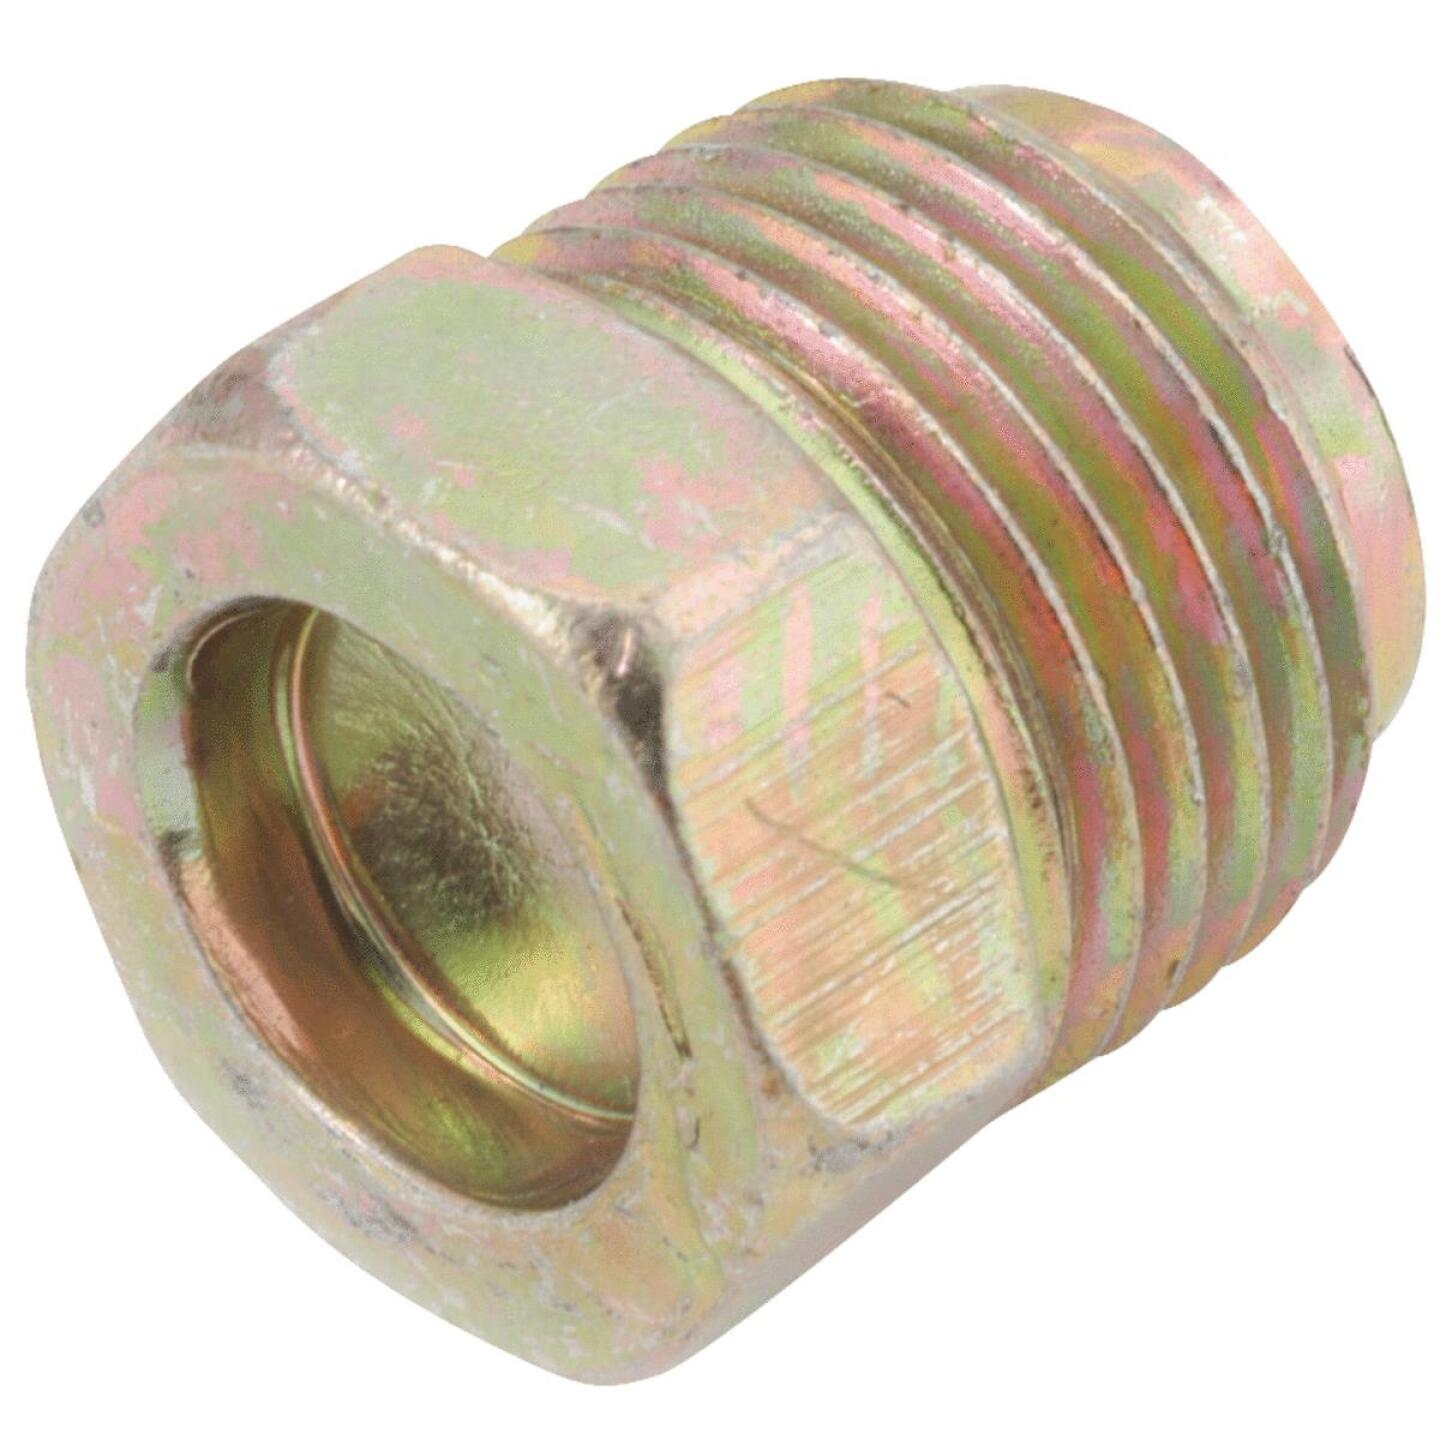 Anderson Metals 5/16 In. Brass Inverted Flare Plug Image 1